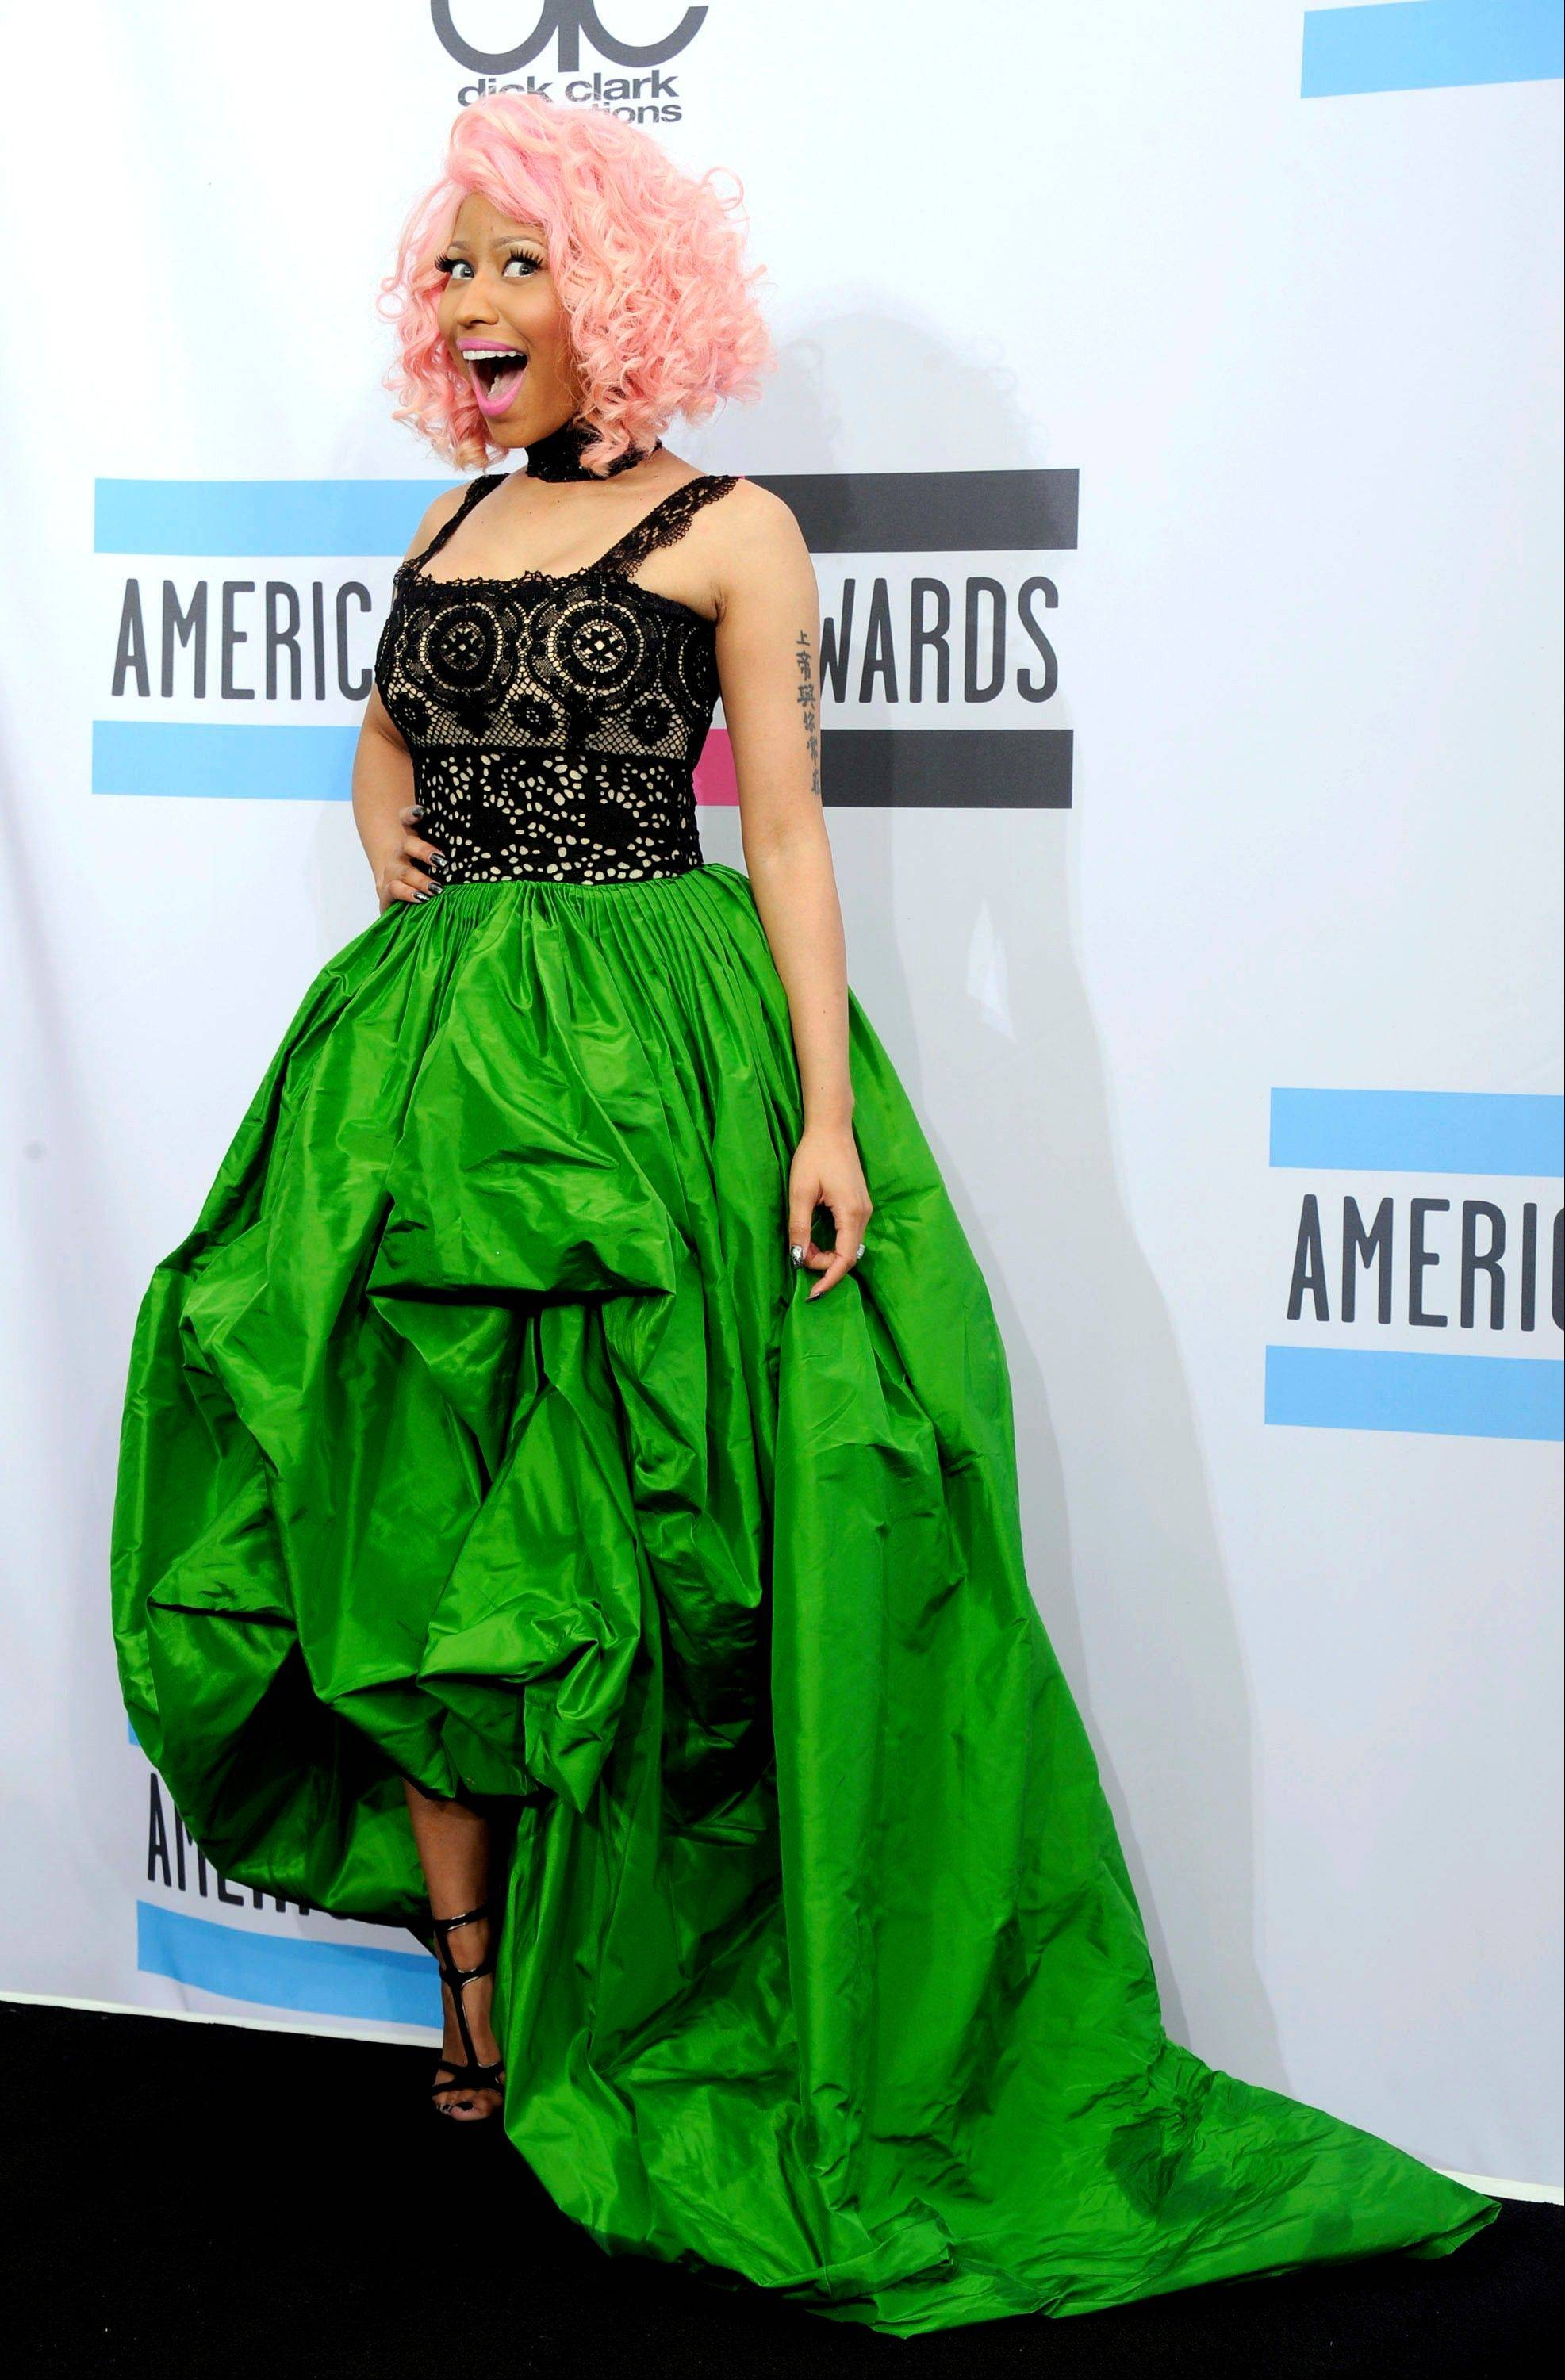 Nicki Minaj poses backstage at the 39th Annual American Music Awards on Sunday, Nov. 20, 2011 in Los Angeles.